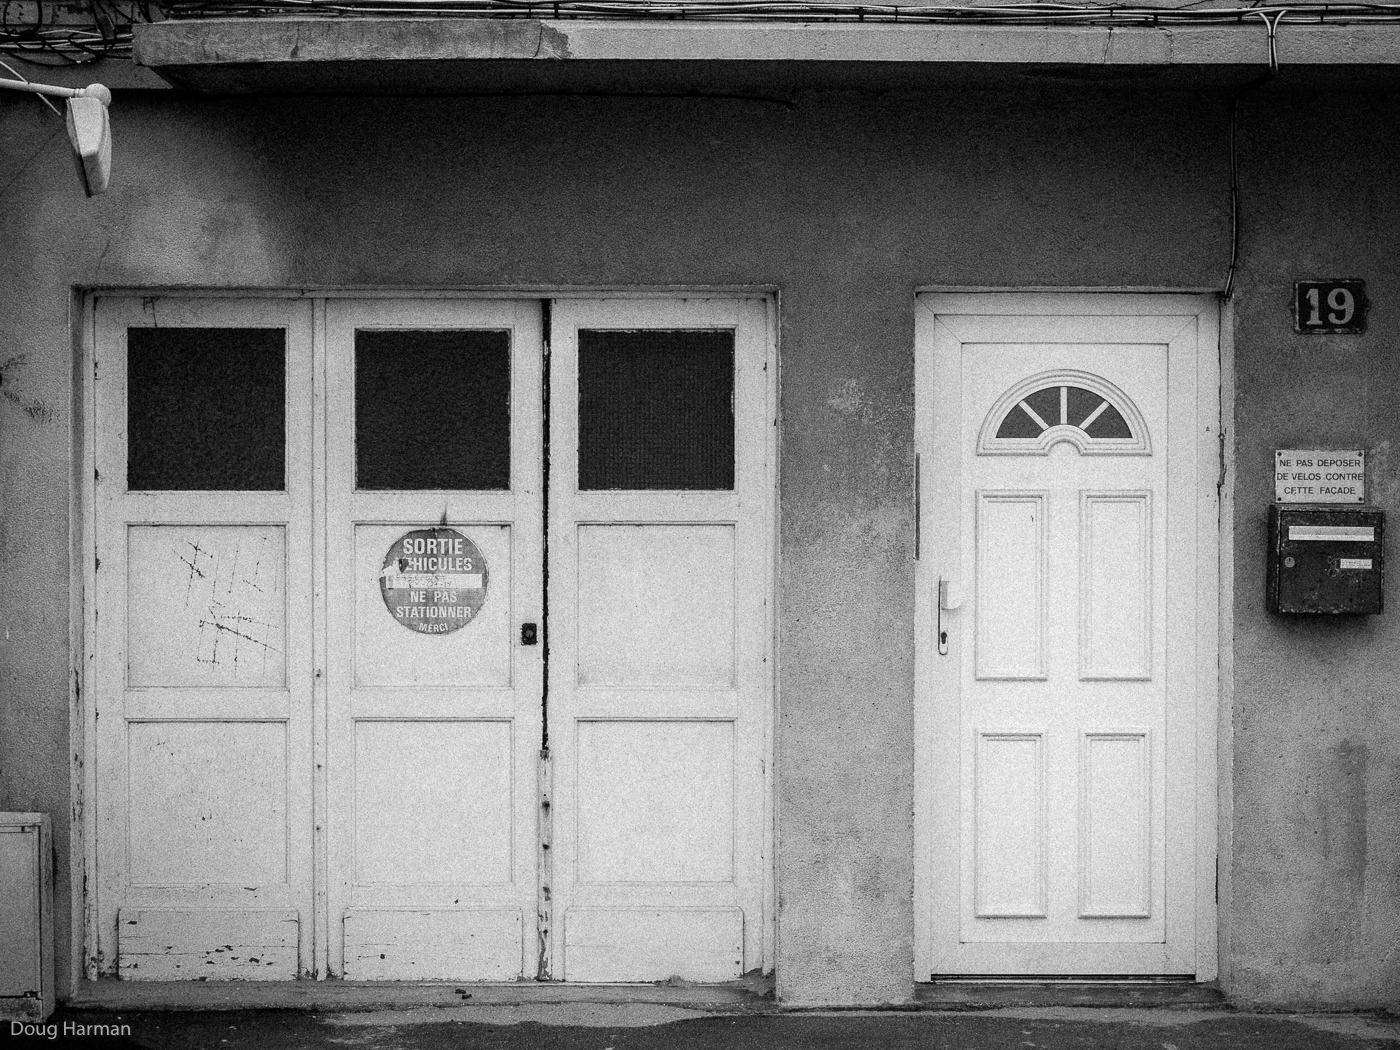 Number 19. One of the doors photographed as part of my Doorways project, in Dunkirk, France.